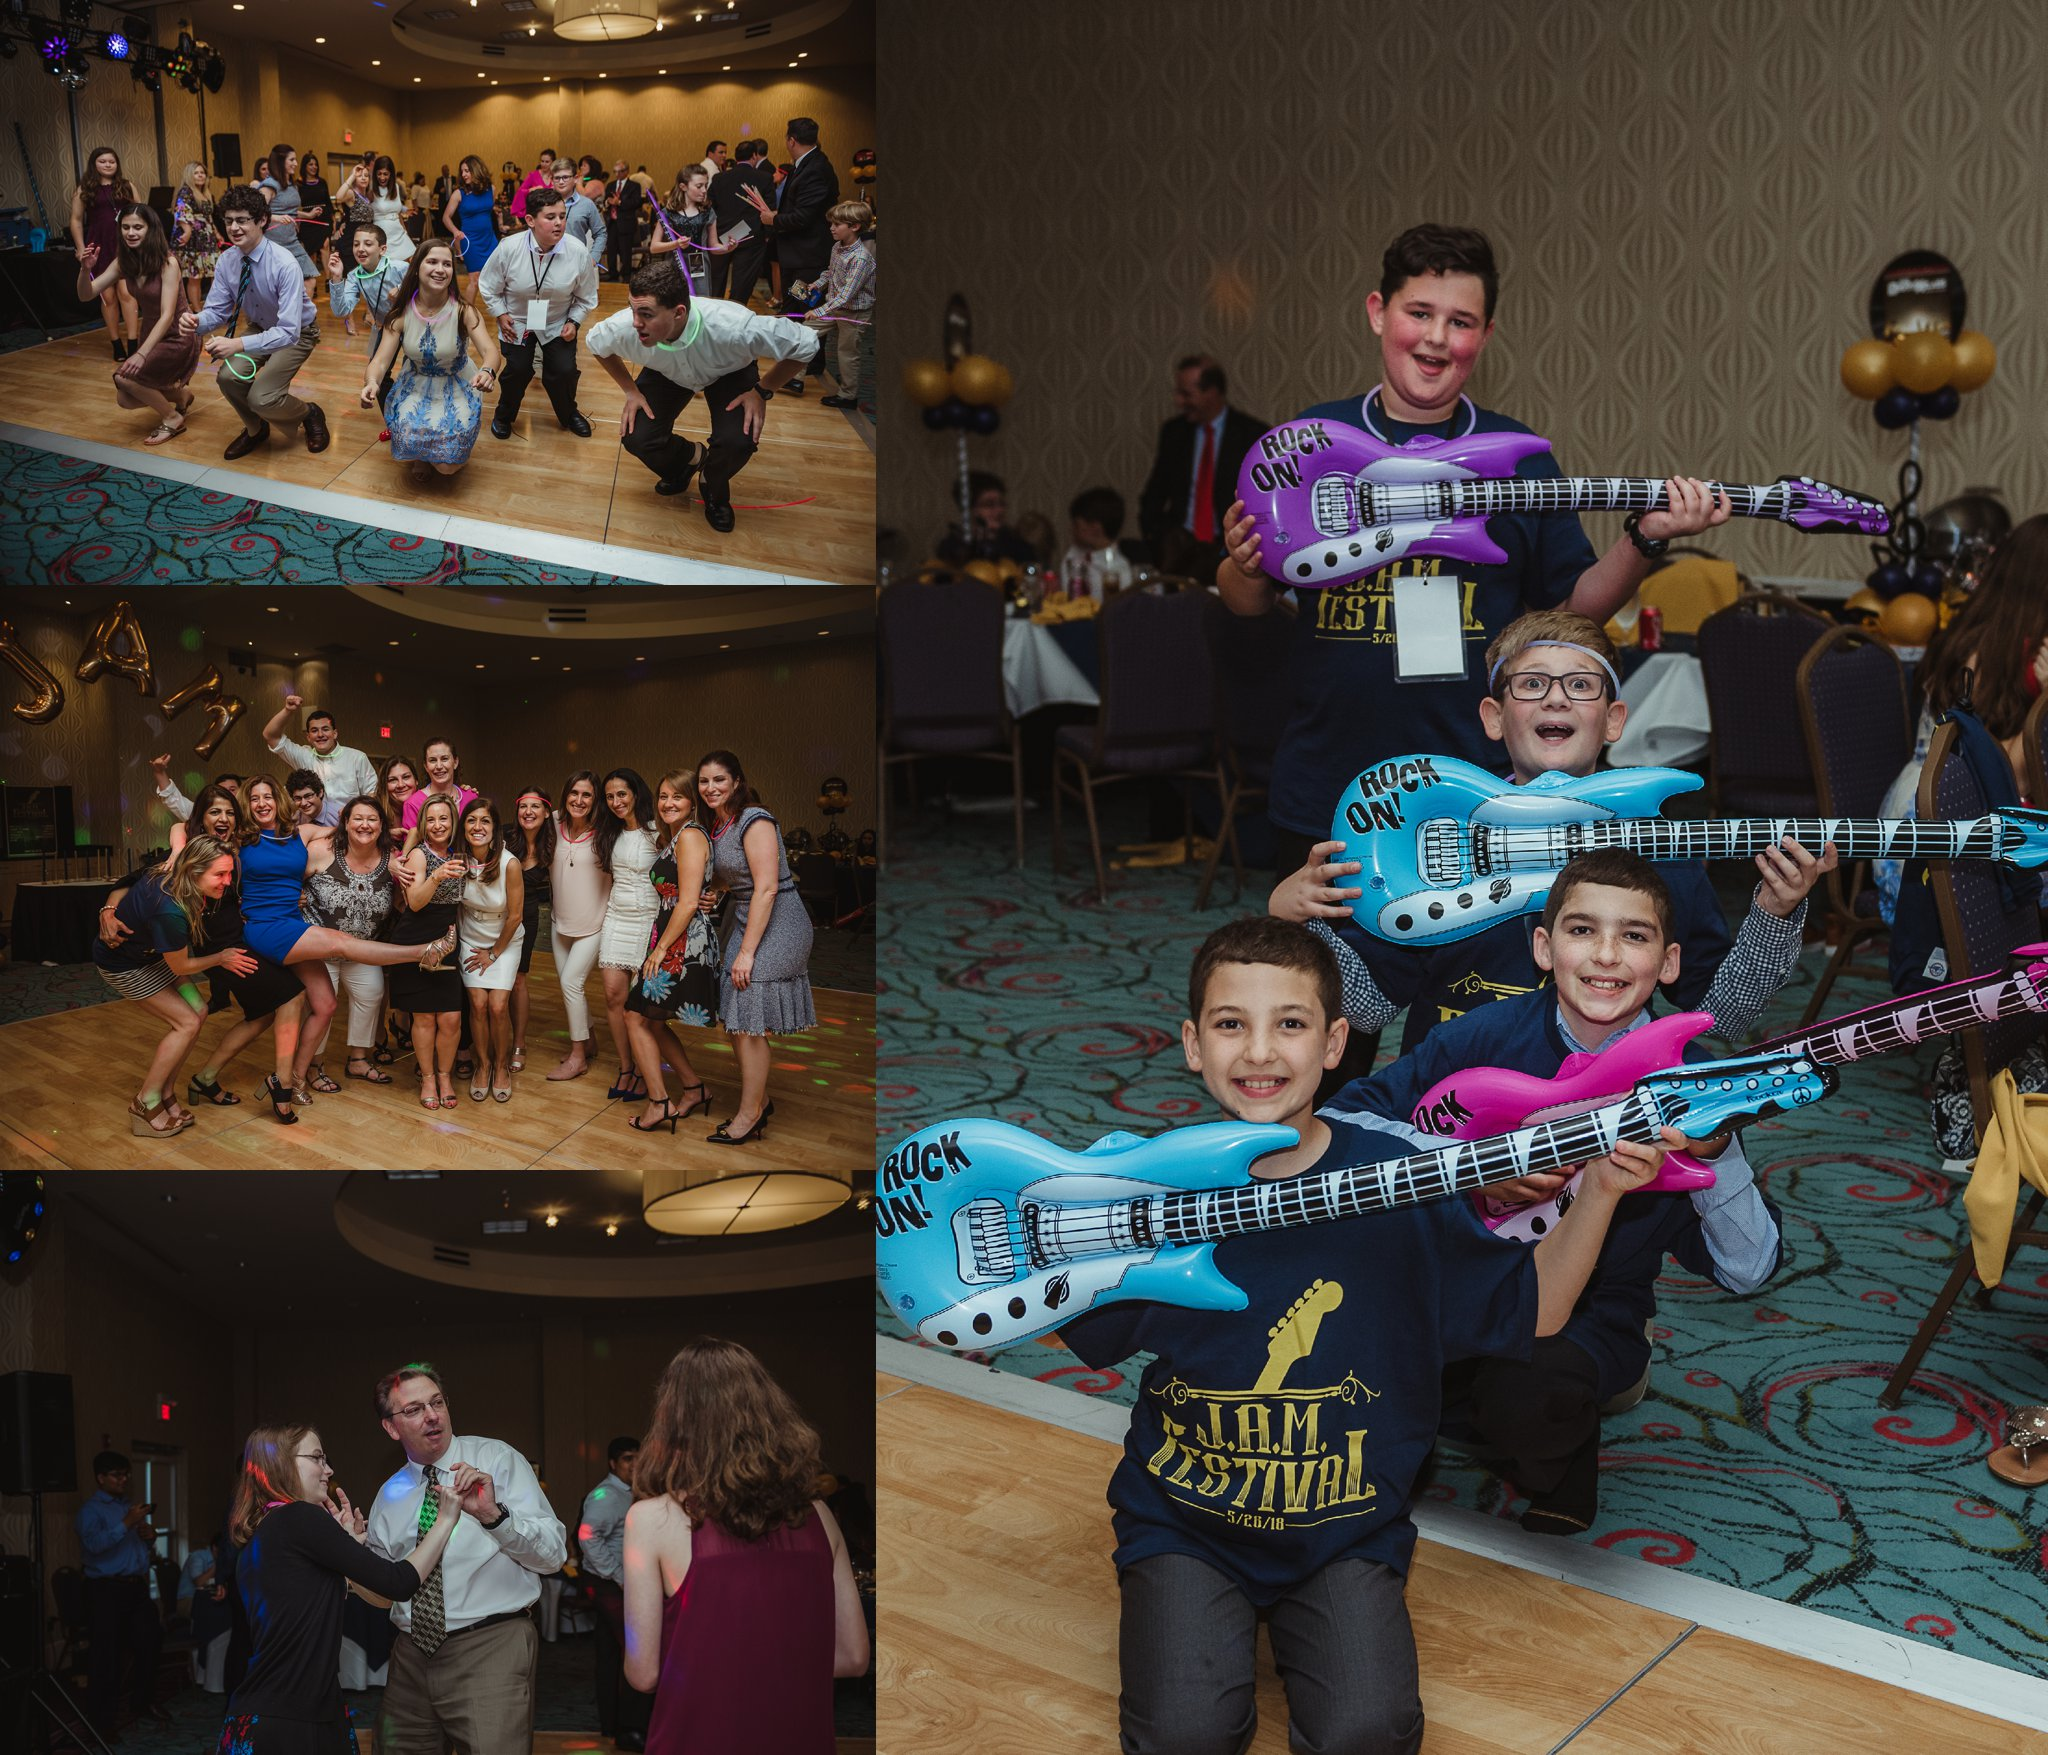 All the guests enjoyed dancing and posing for pictures at Joel's mitzvah celebration party at Embassy Suites in Raleigh, North Carolina, images by Rose Trail Images.